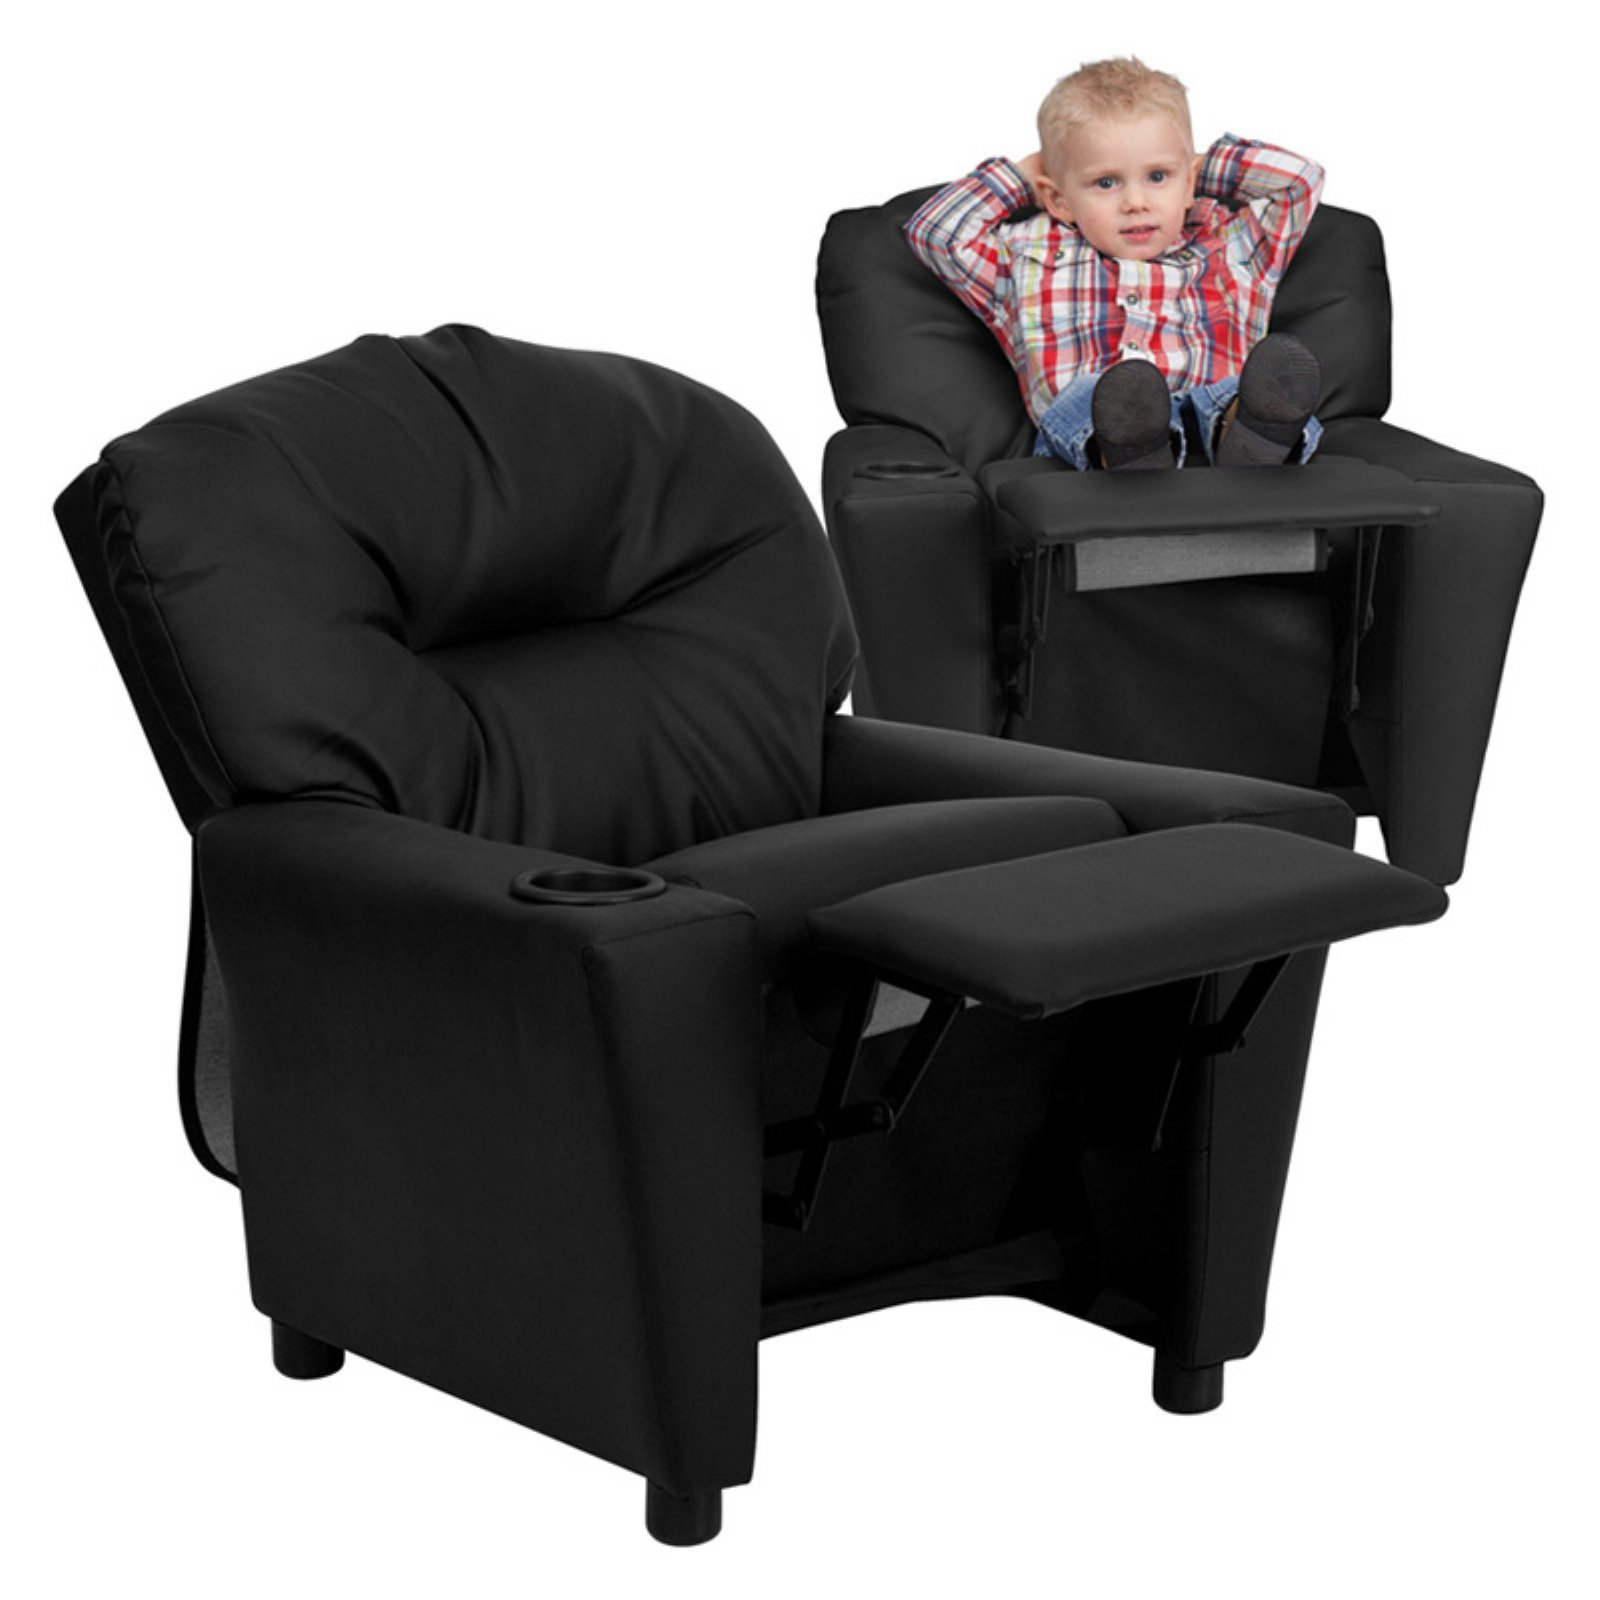 Flash Furniture Kidsu0027 Recliner with Cup Holder Black Leather  sc 1 st  Walmart & Flash Furniture Kidsu0027 Recliner with Cup Holder Black Leather ... islam-shia.org